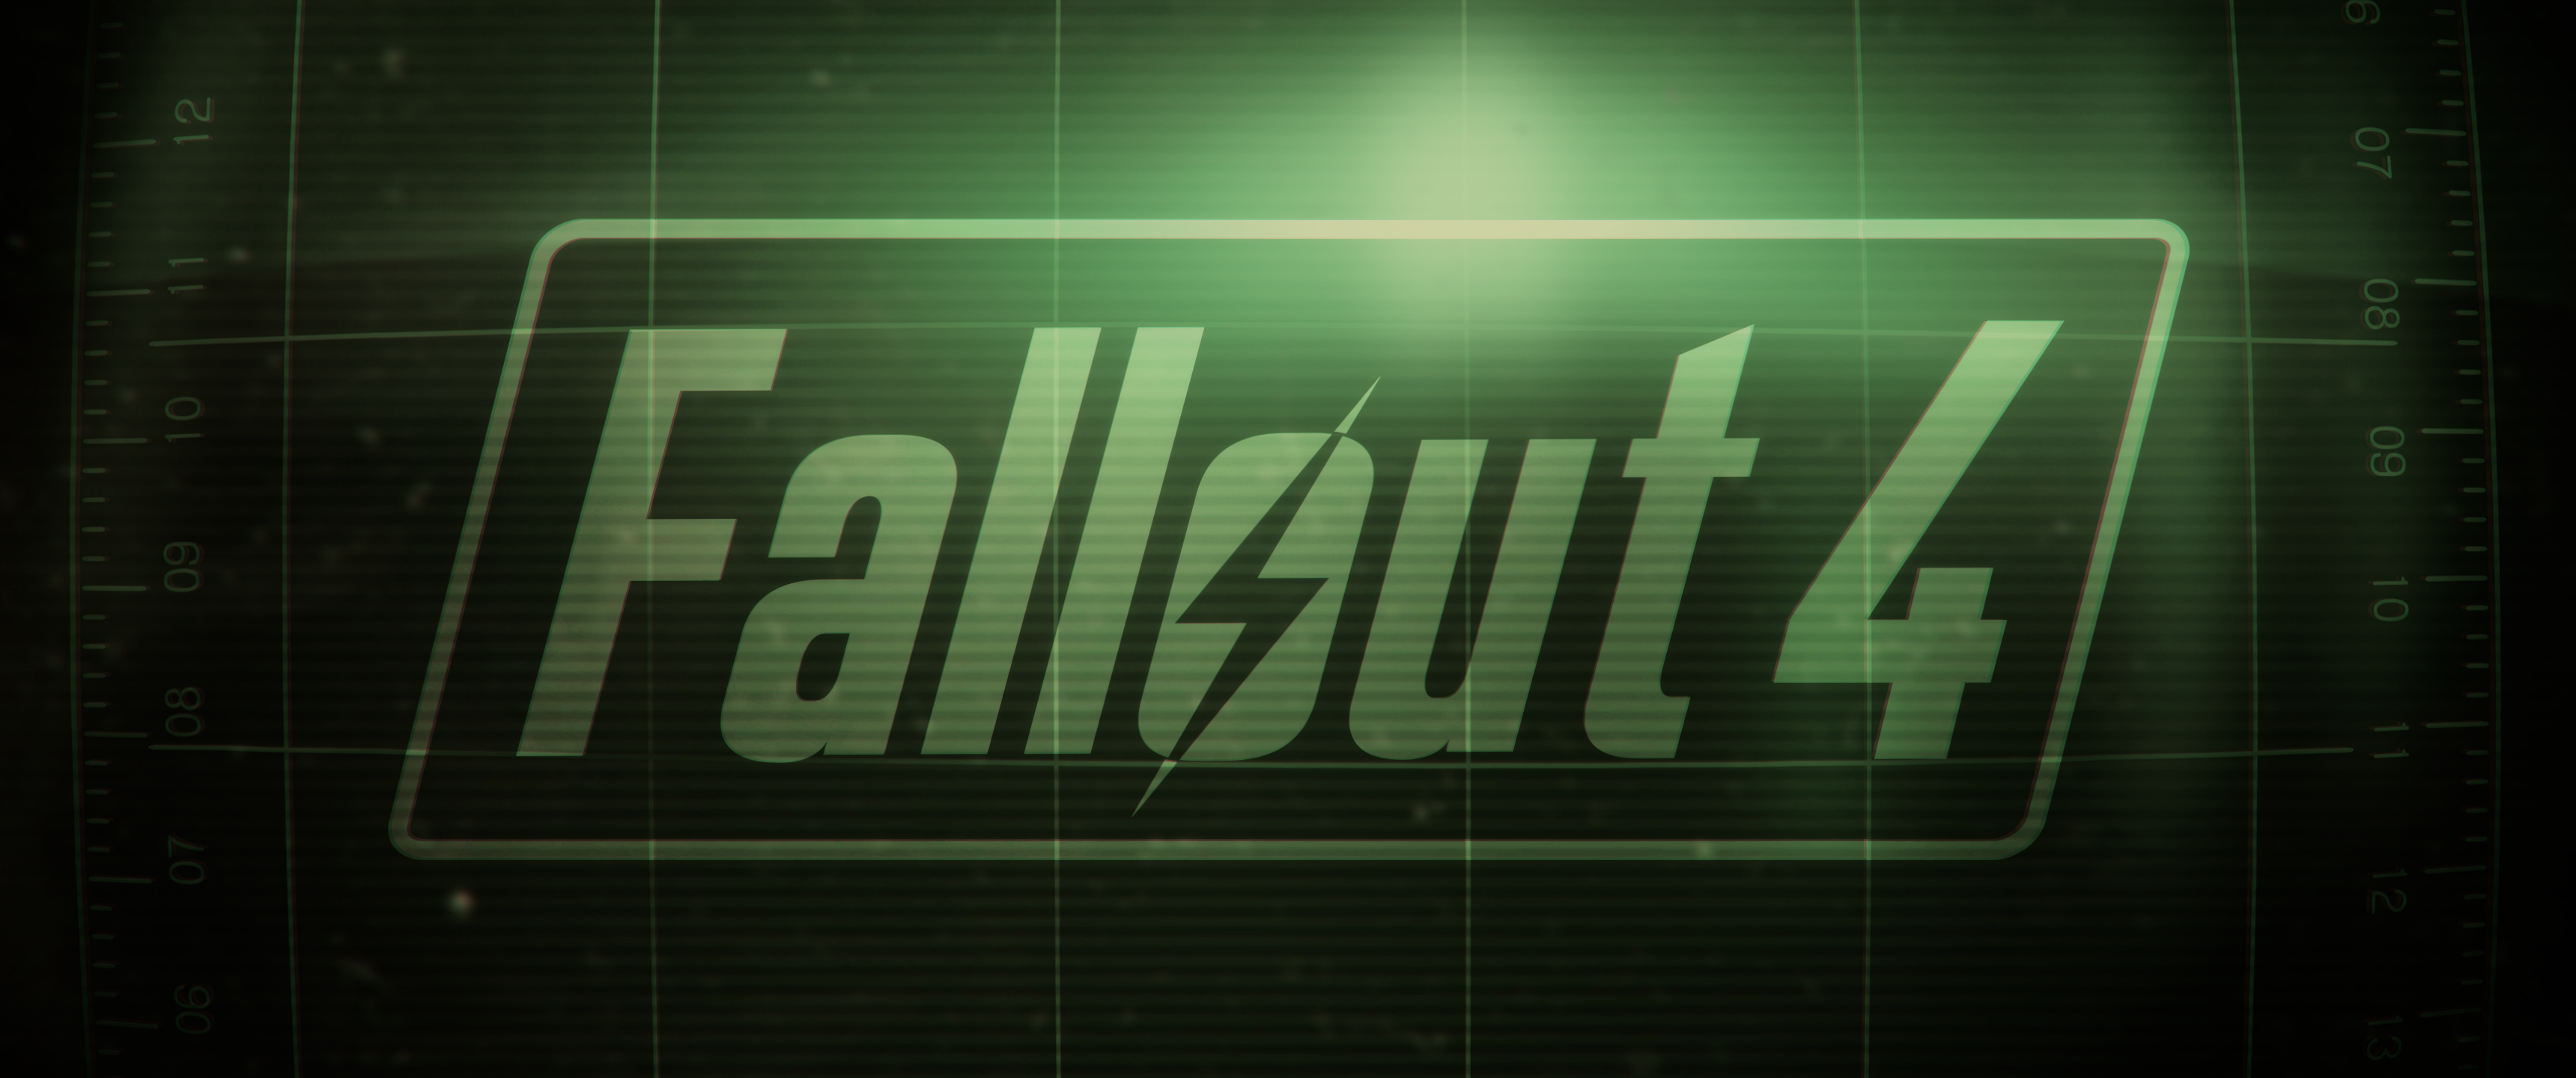 fallout 4 hd wallpaper iphone